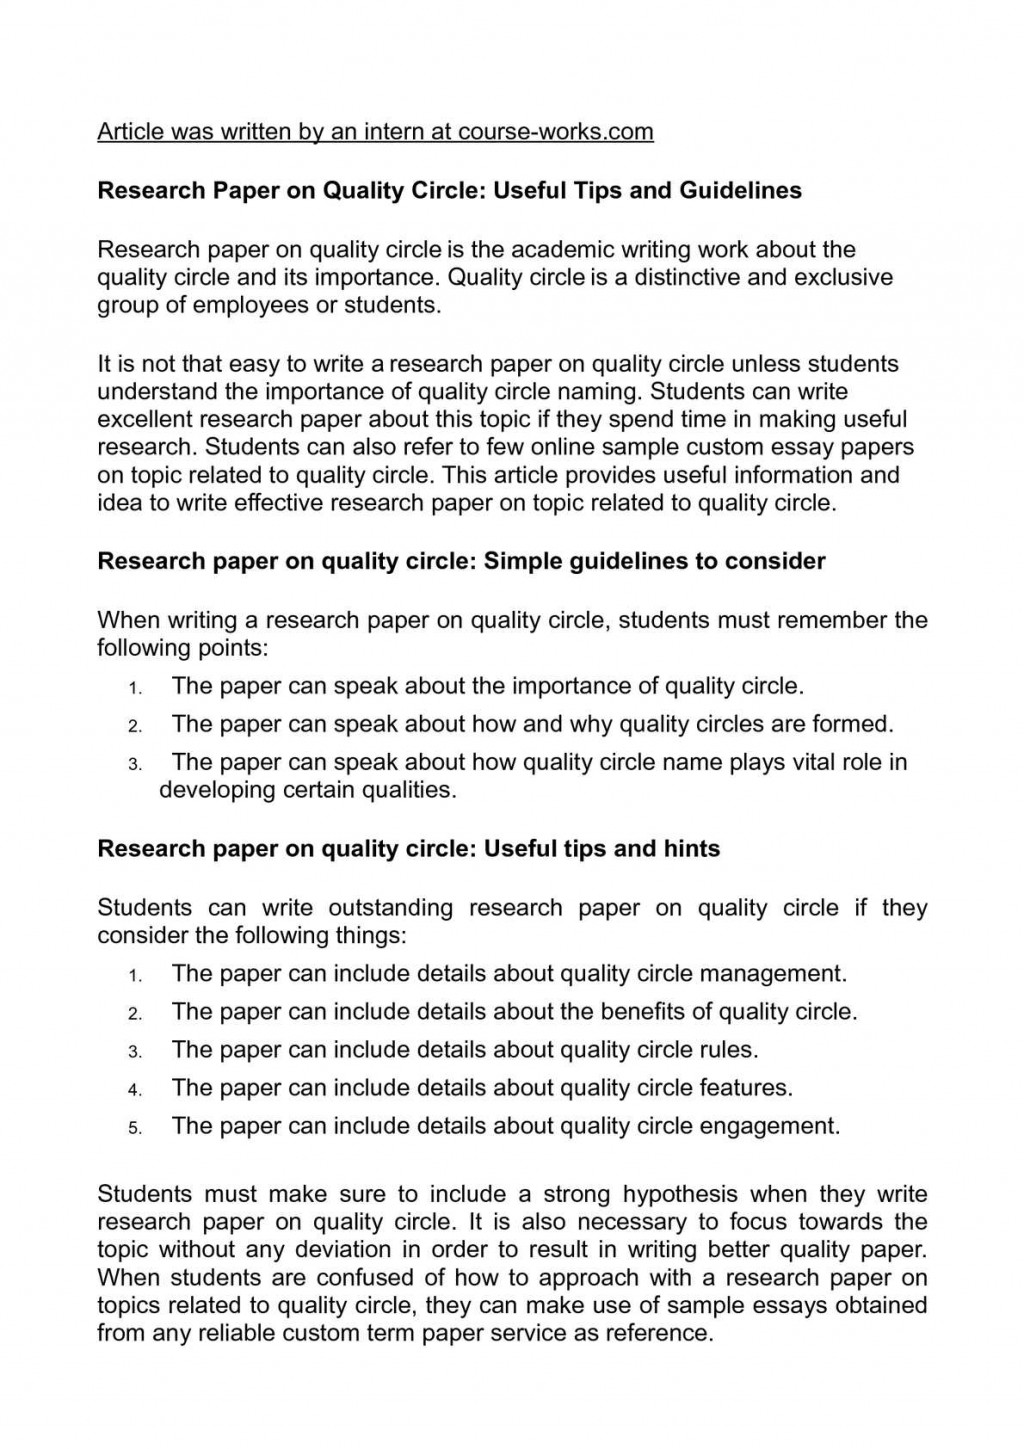 007 Research Paper Easy Topics Beautiful For High School Students American History About Business Large